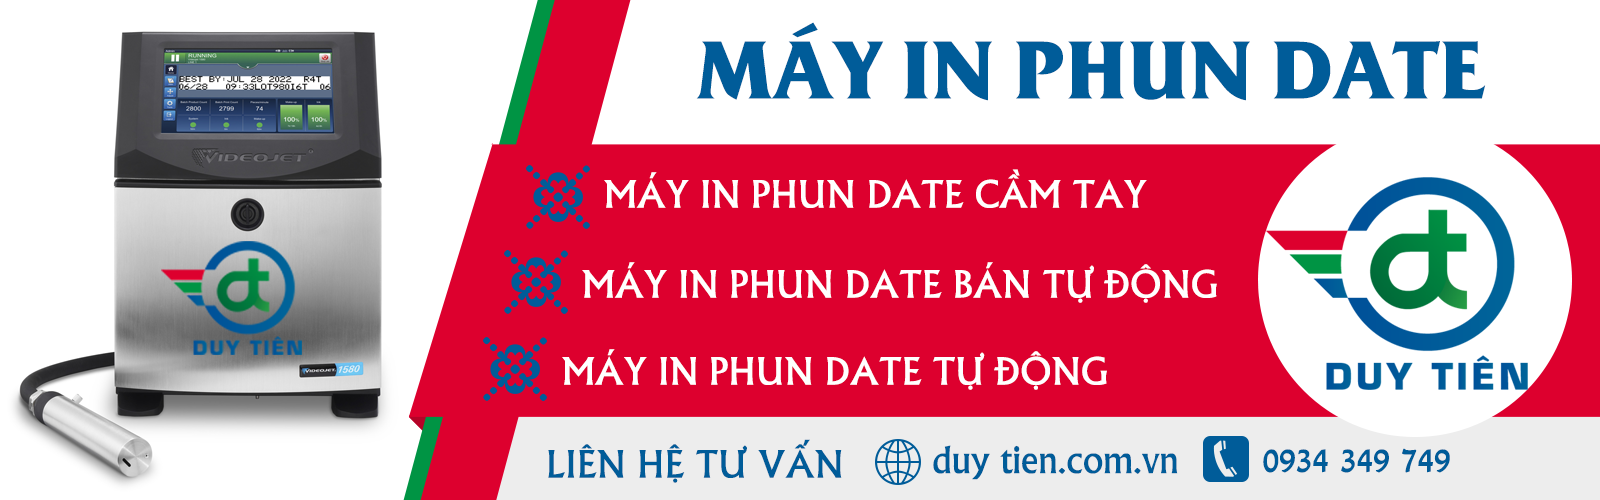 banner-may-in-phun-date-duy-tien-8